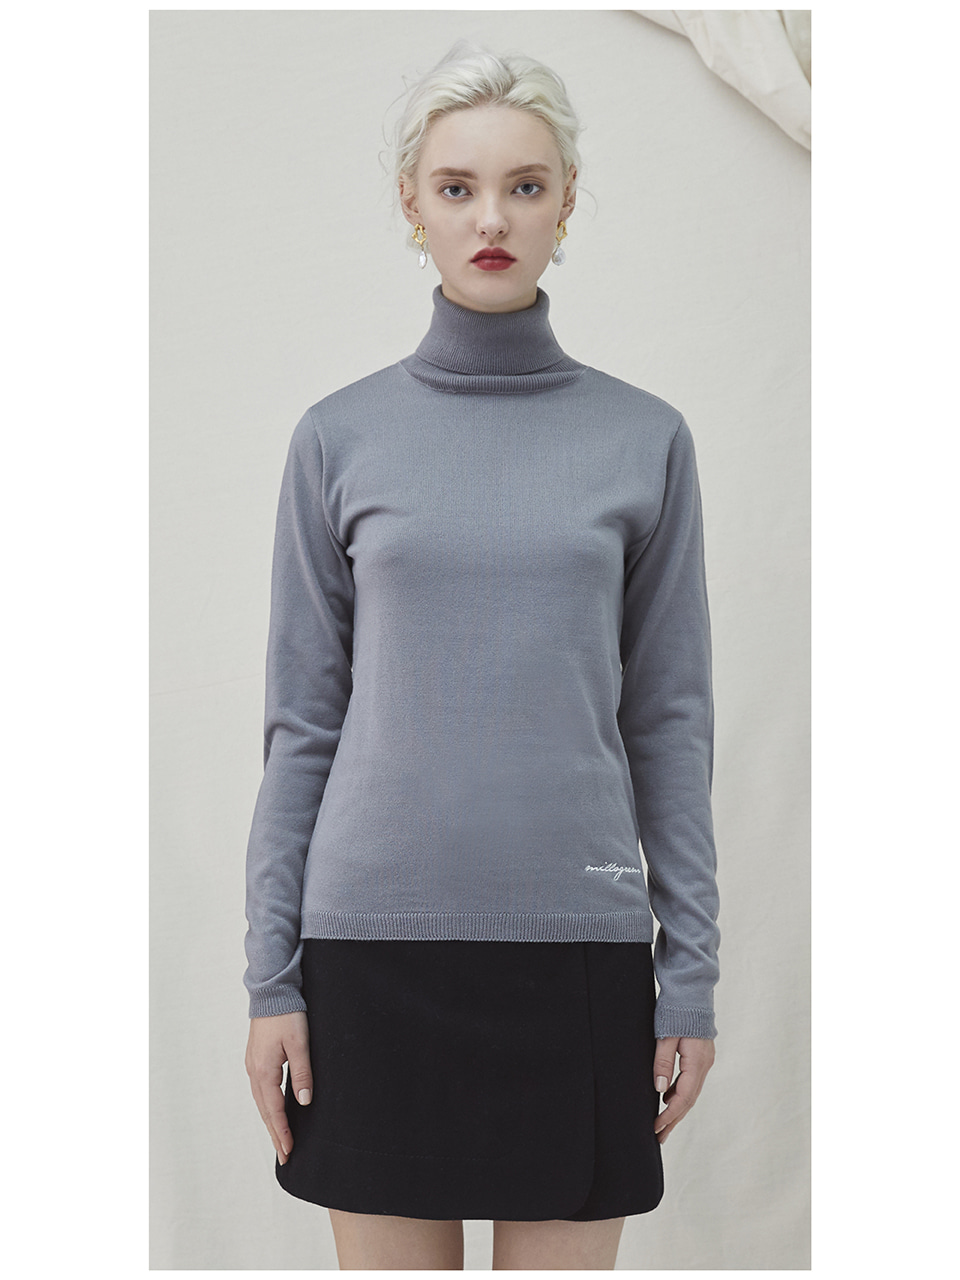 Embo Turtleneck - gray